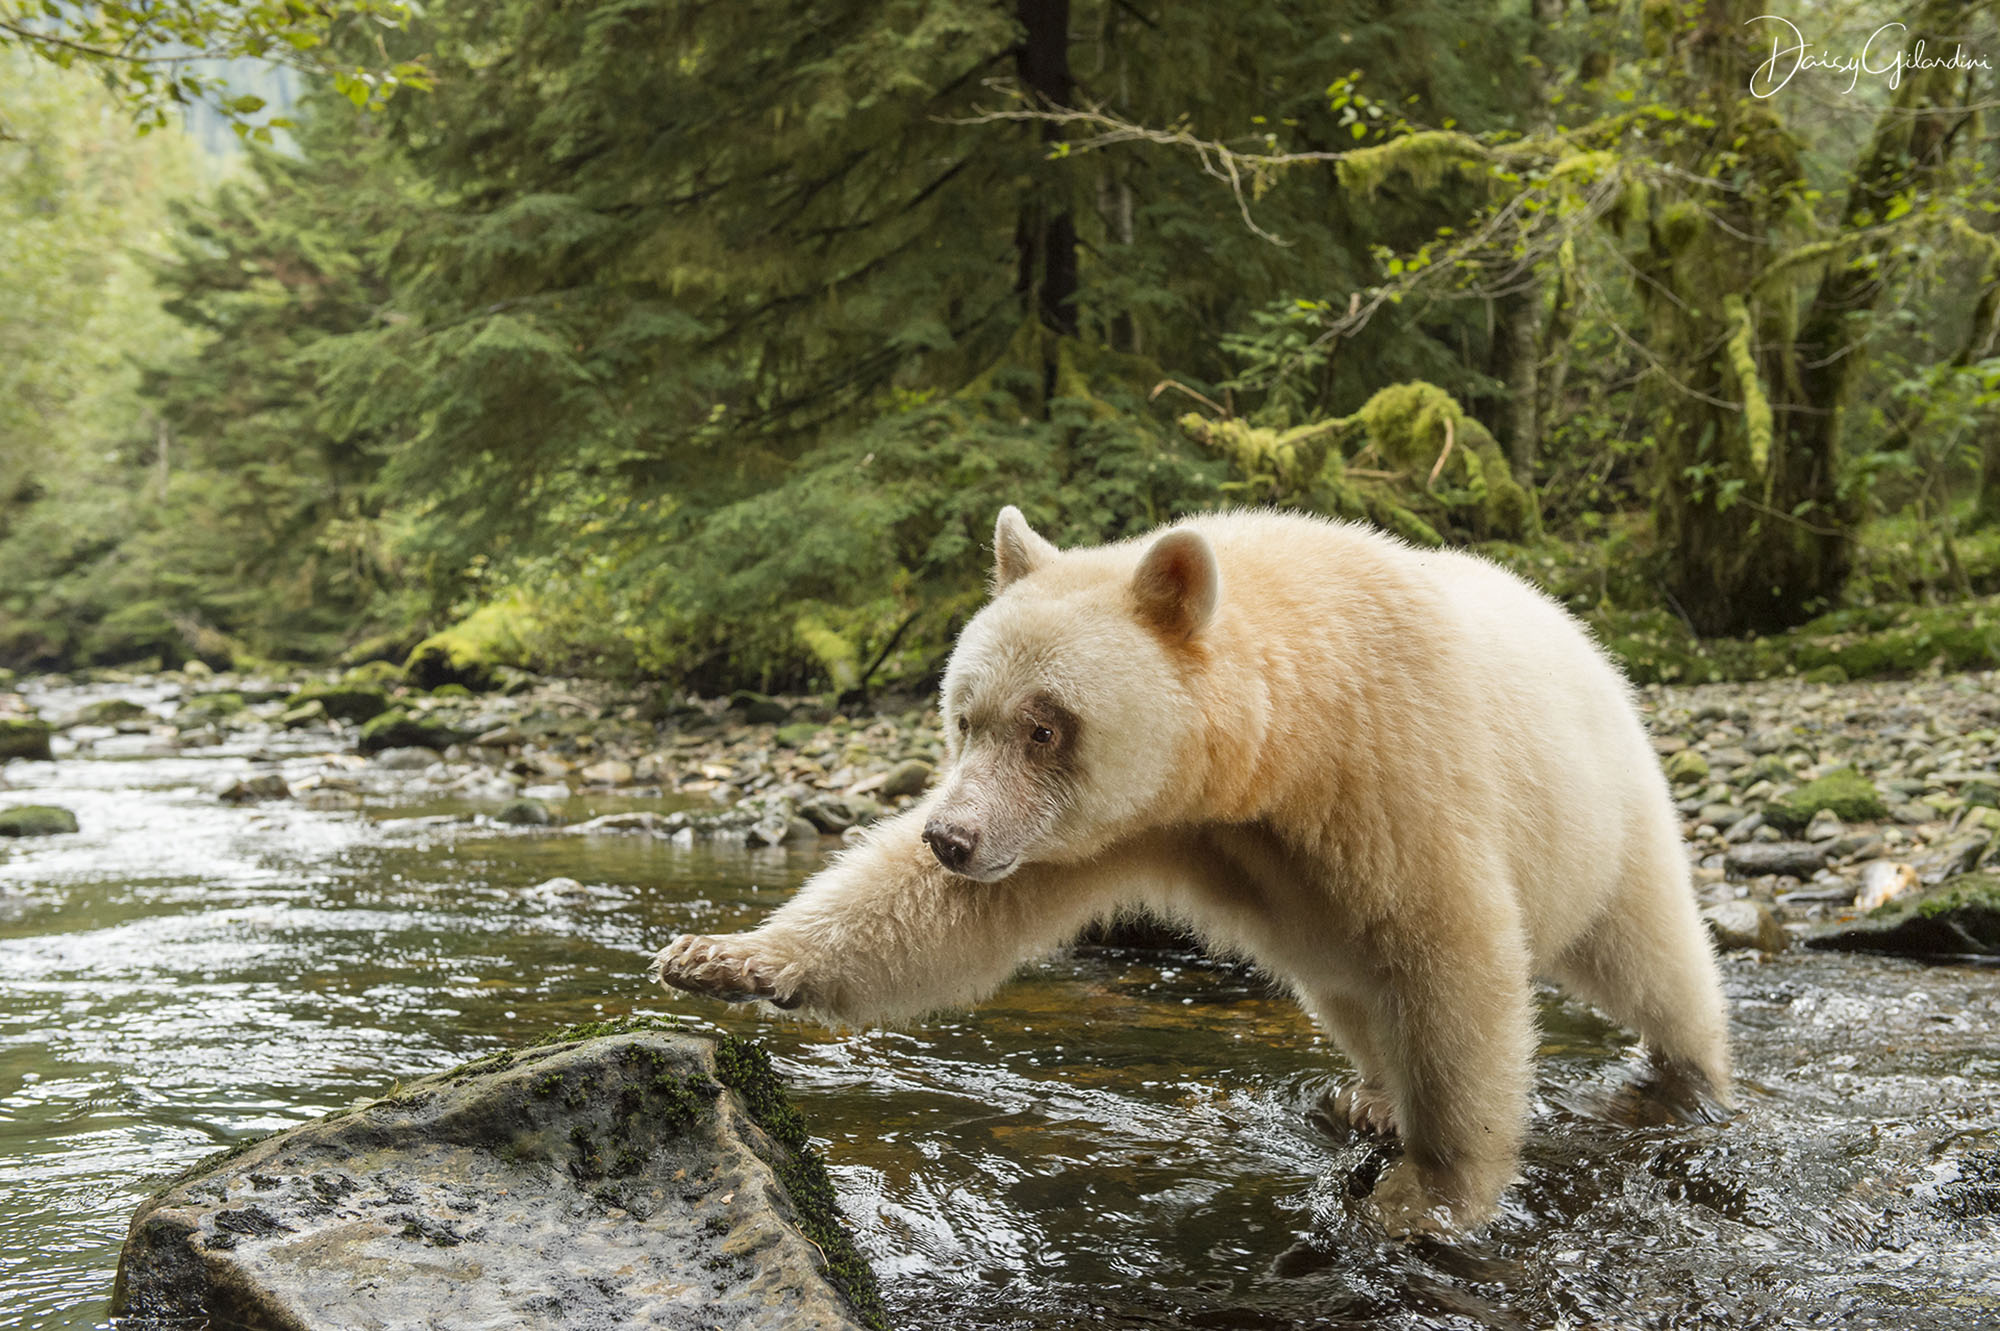 Spirit bear crossing river in forest (Daisy Gilardini)